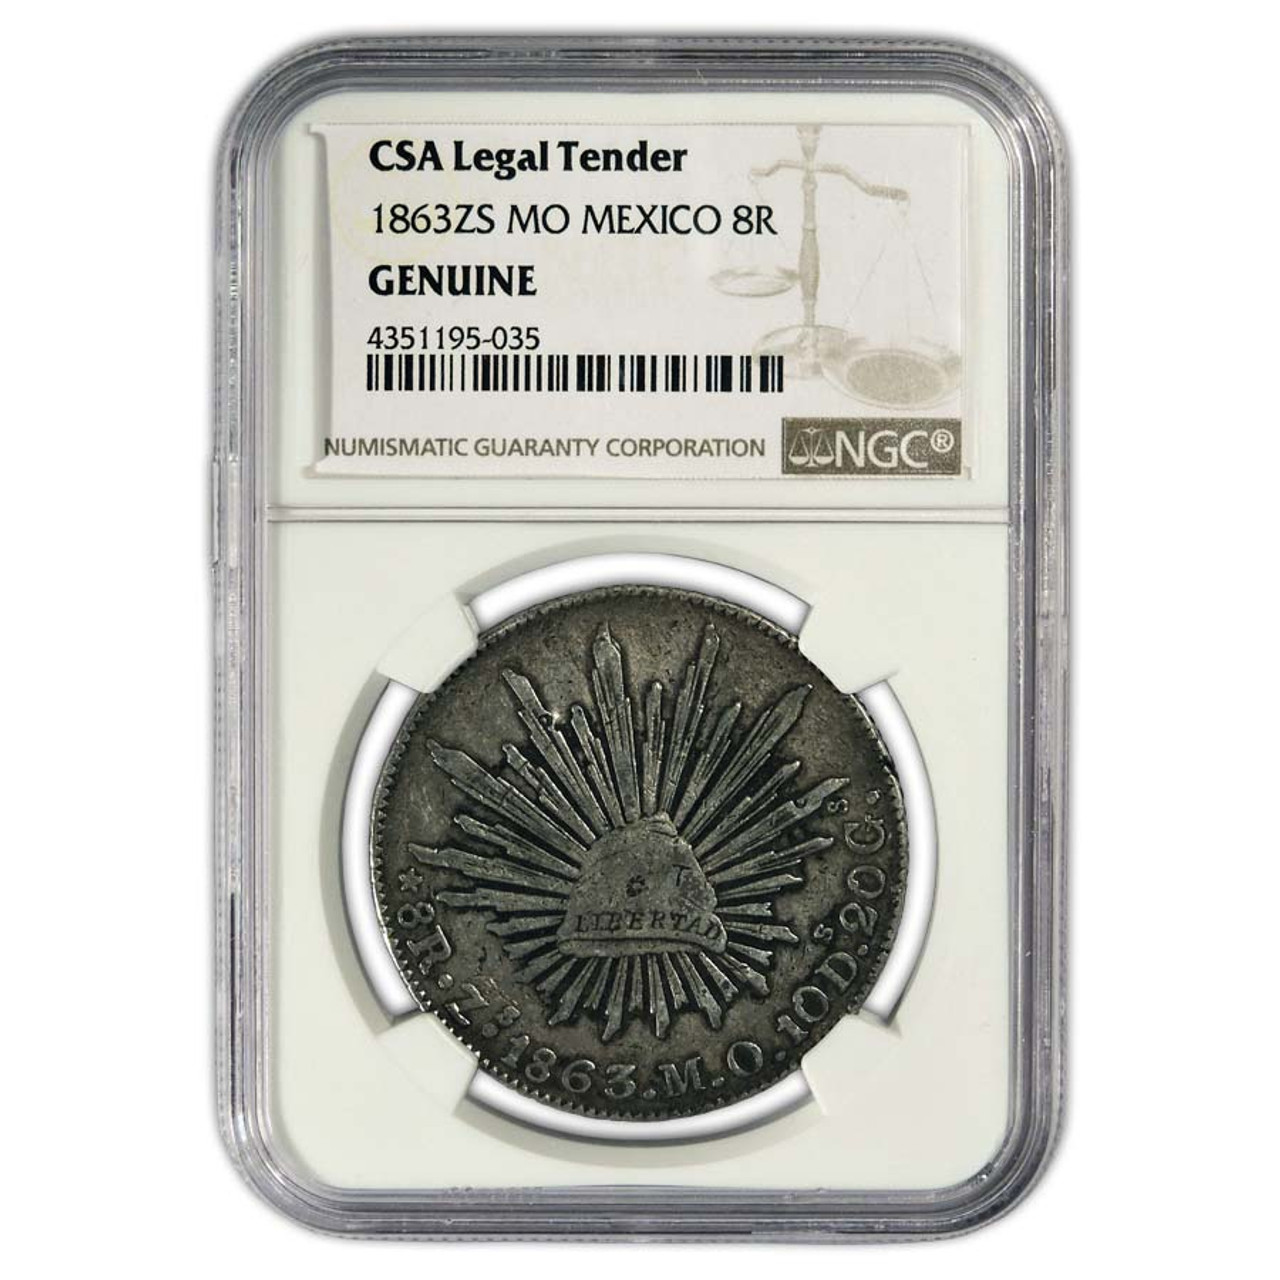 Mexico 1858-1864 Silver 8 Reales Certified Image 1